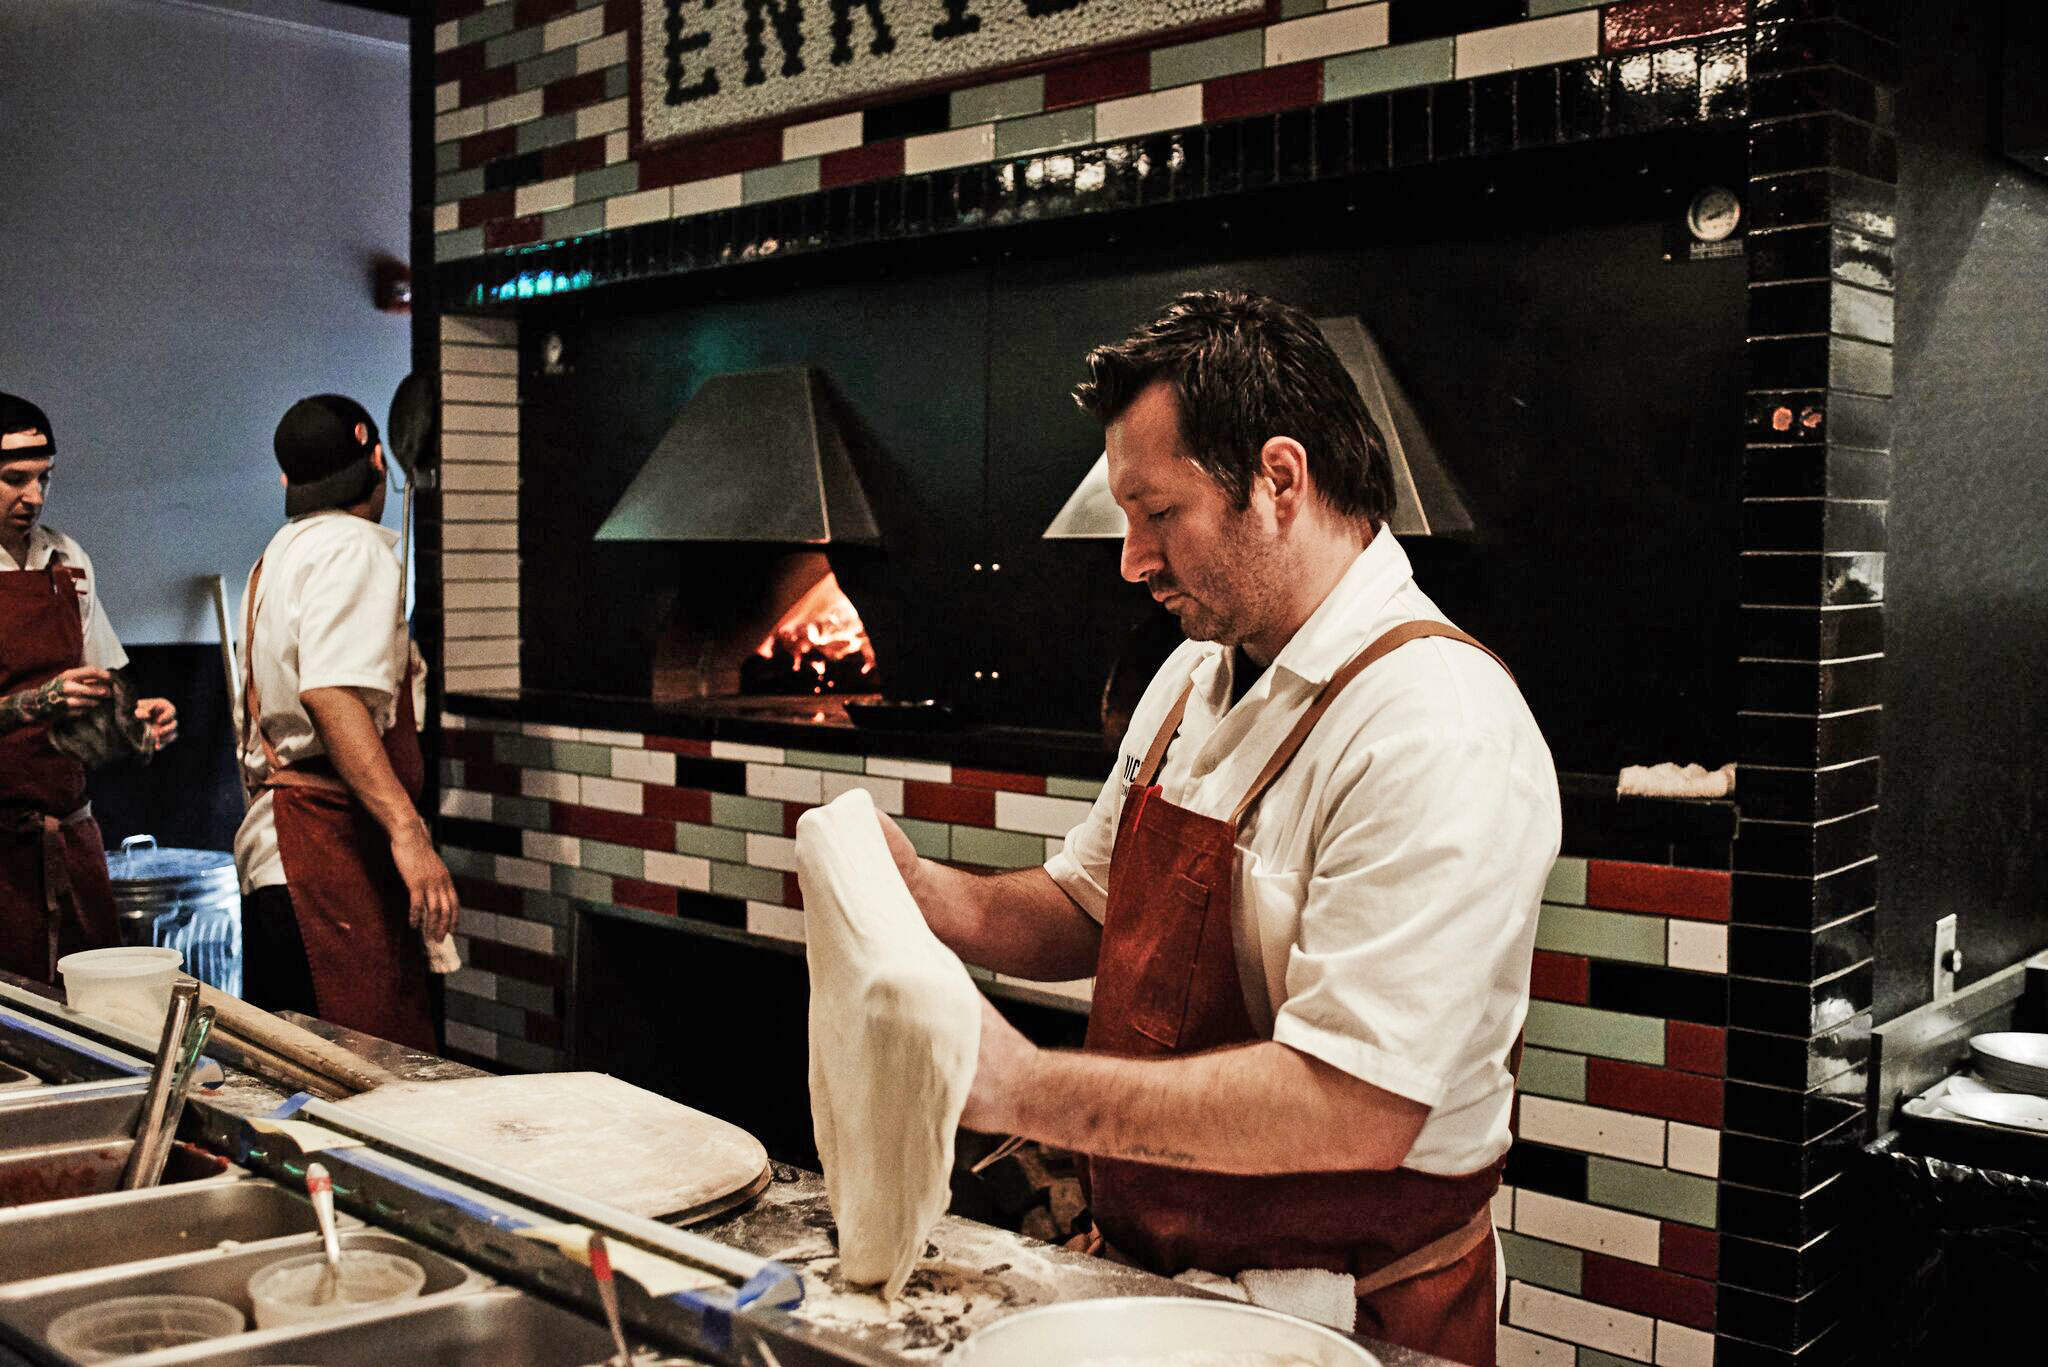 tony galzin from nicky's coal fired in nashville working pizza dough